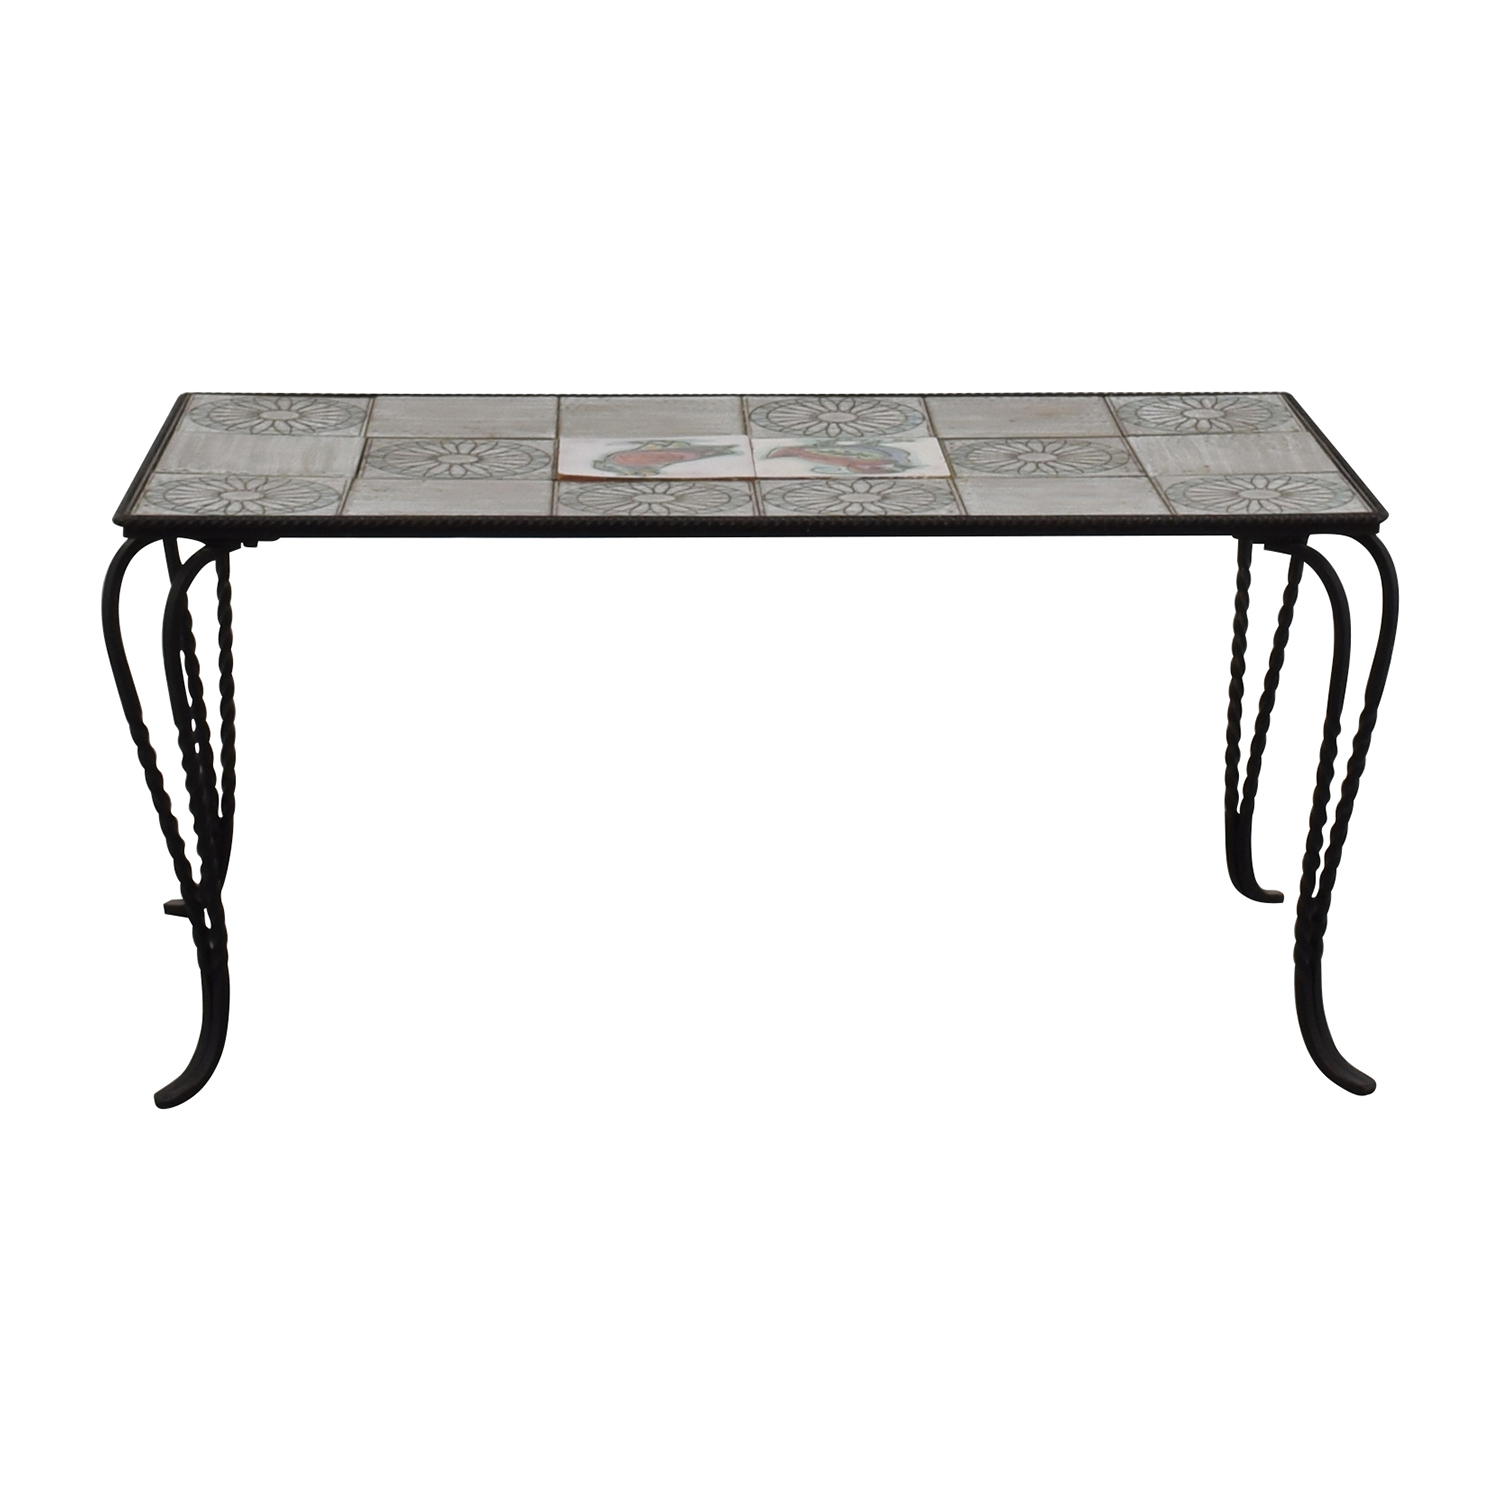 Wrought Iron Tile Table nj